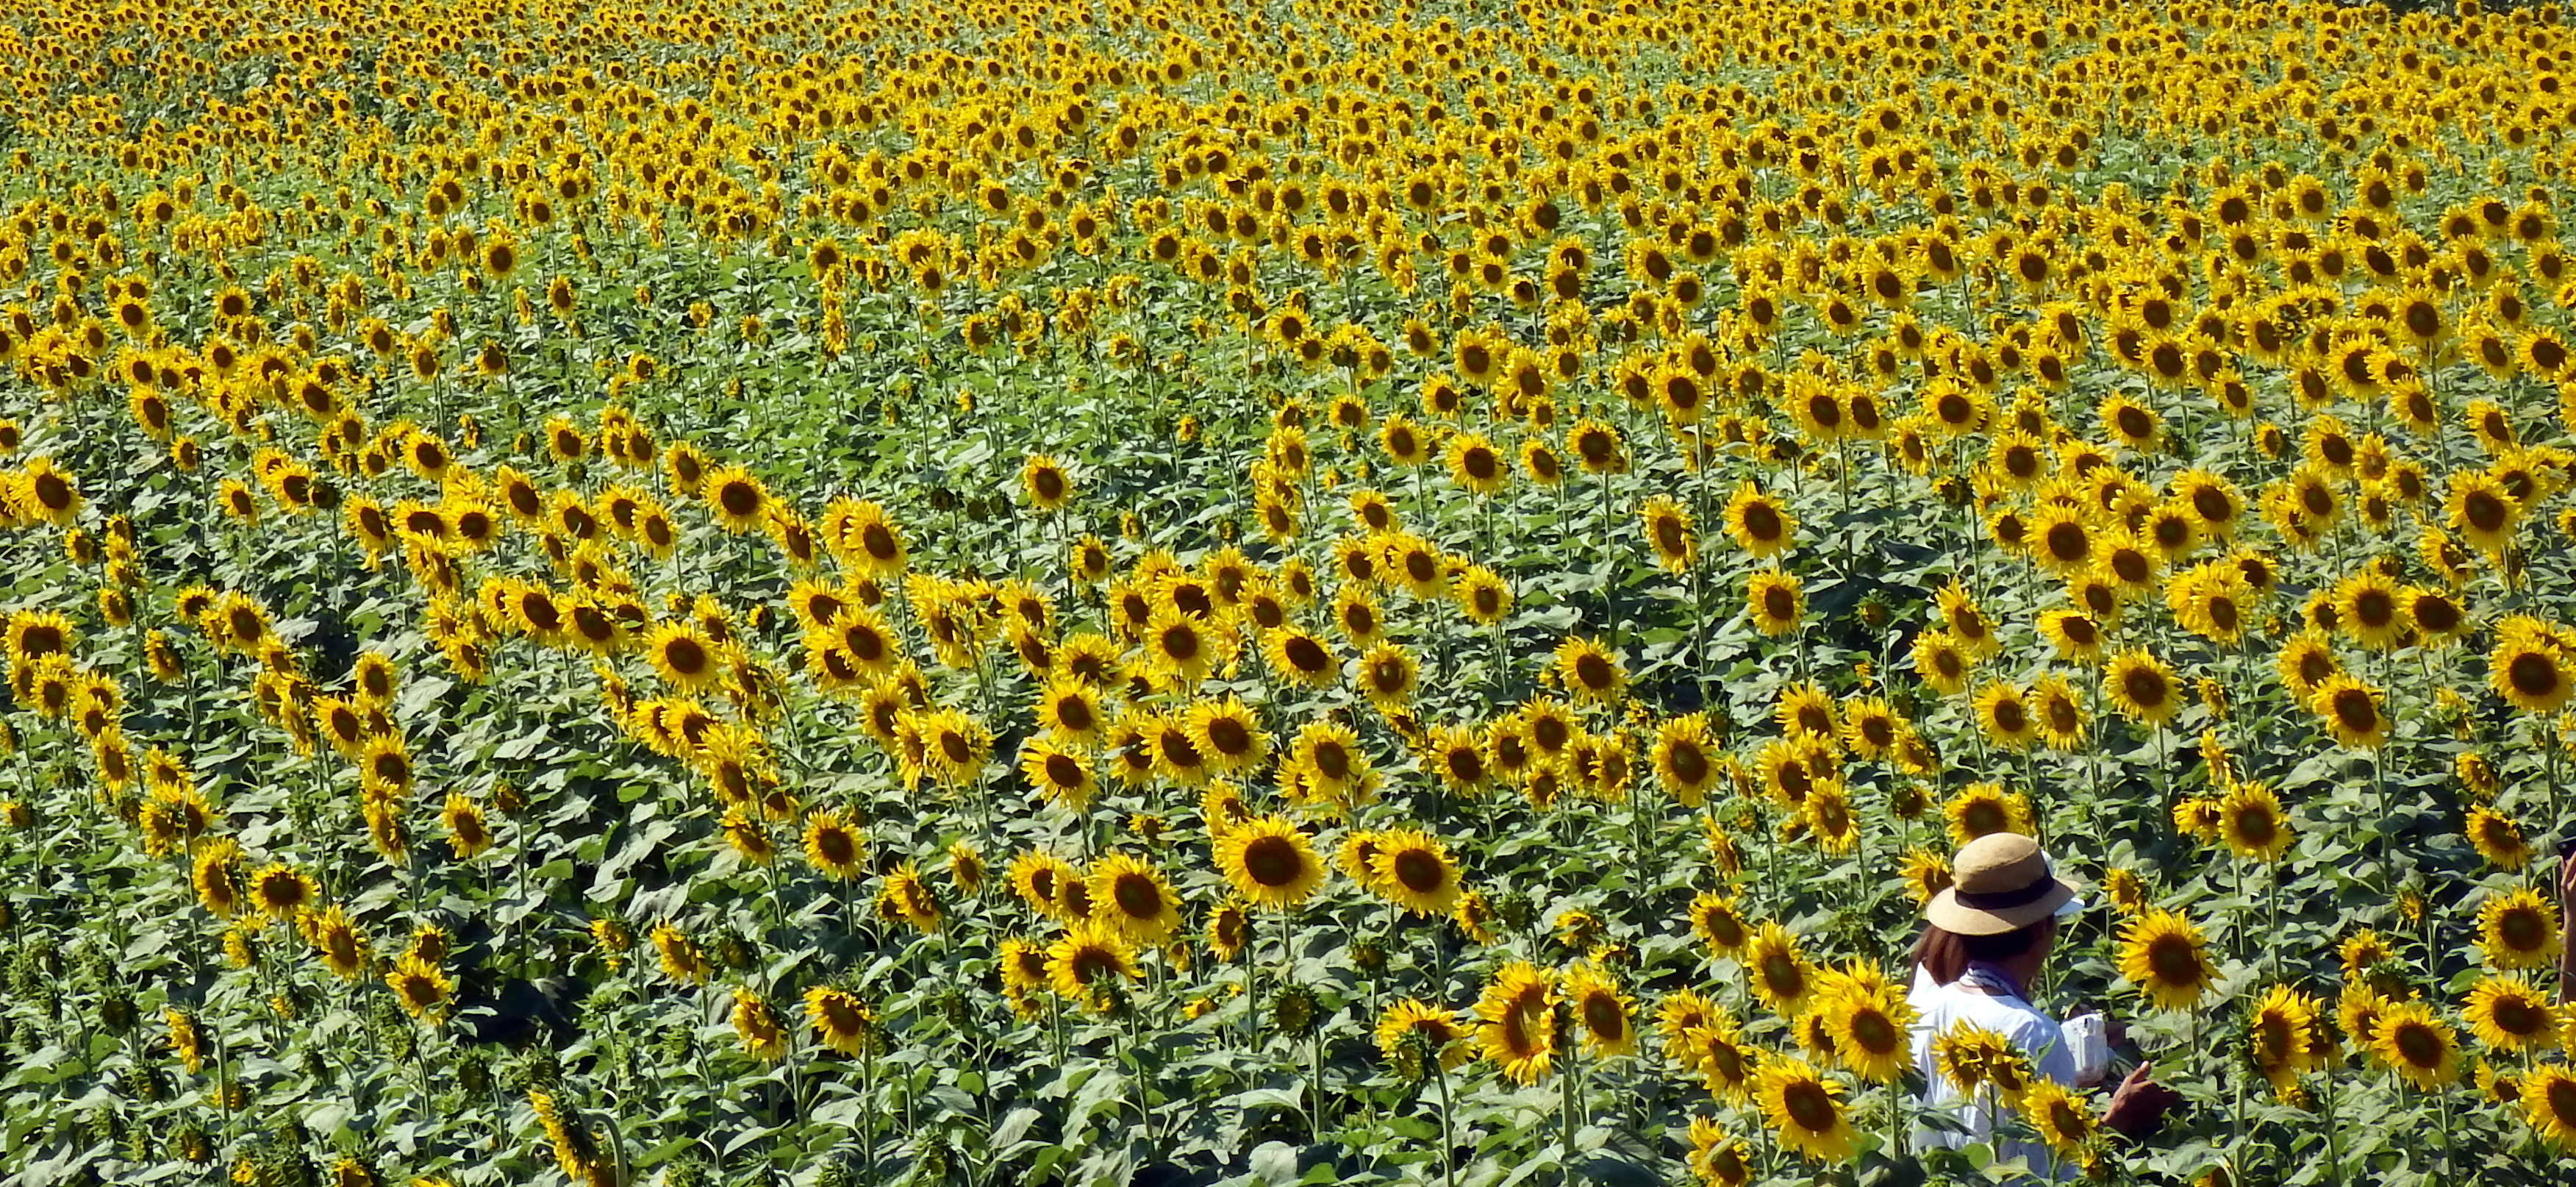 Person in a Sunflower Field, Green, Woman, Tourist, Sunflowers, HQ Photo